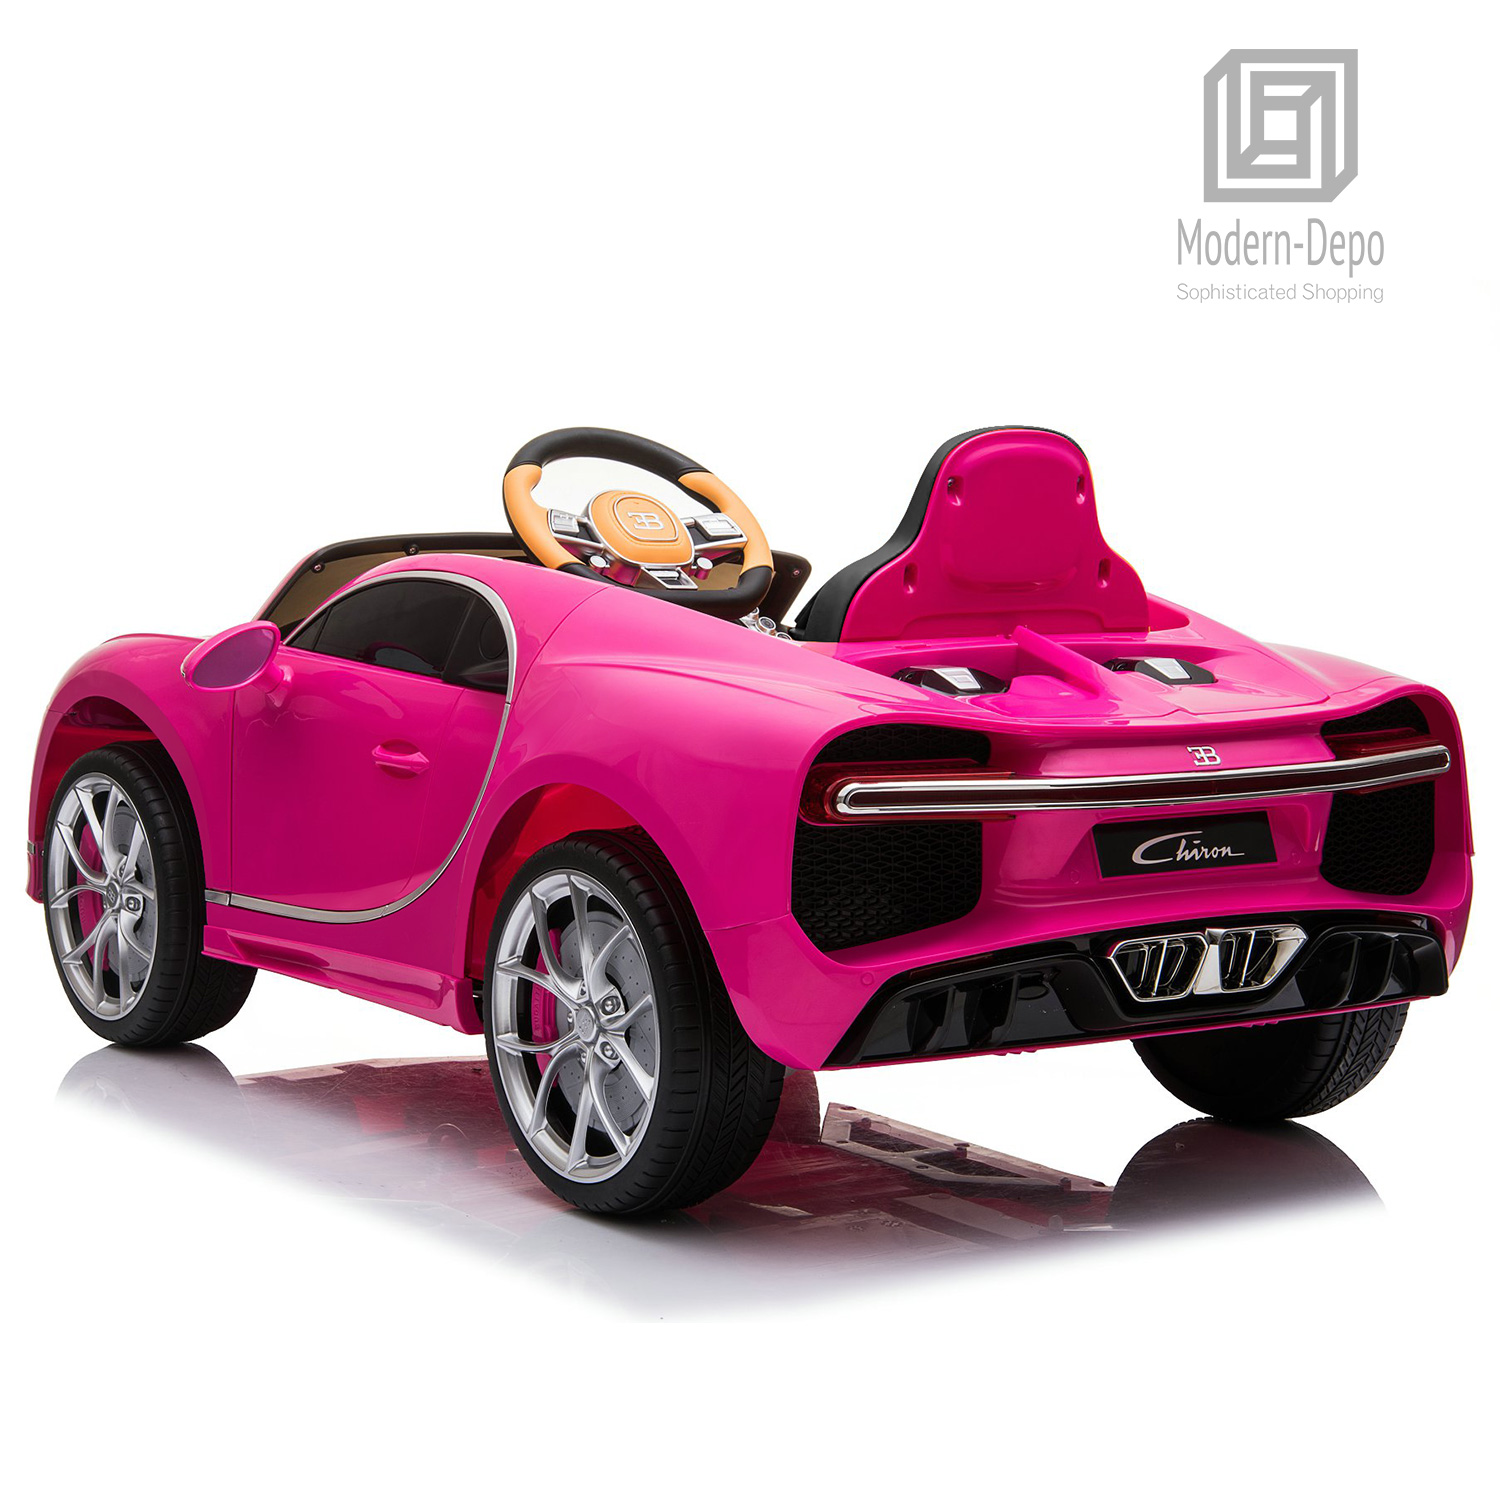 Bugatti-Chiron-12V-Kids-Ride-On-Car-with-Remote-Control-High-Speed-Motor miniature 25